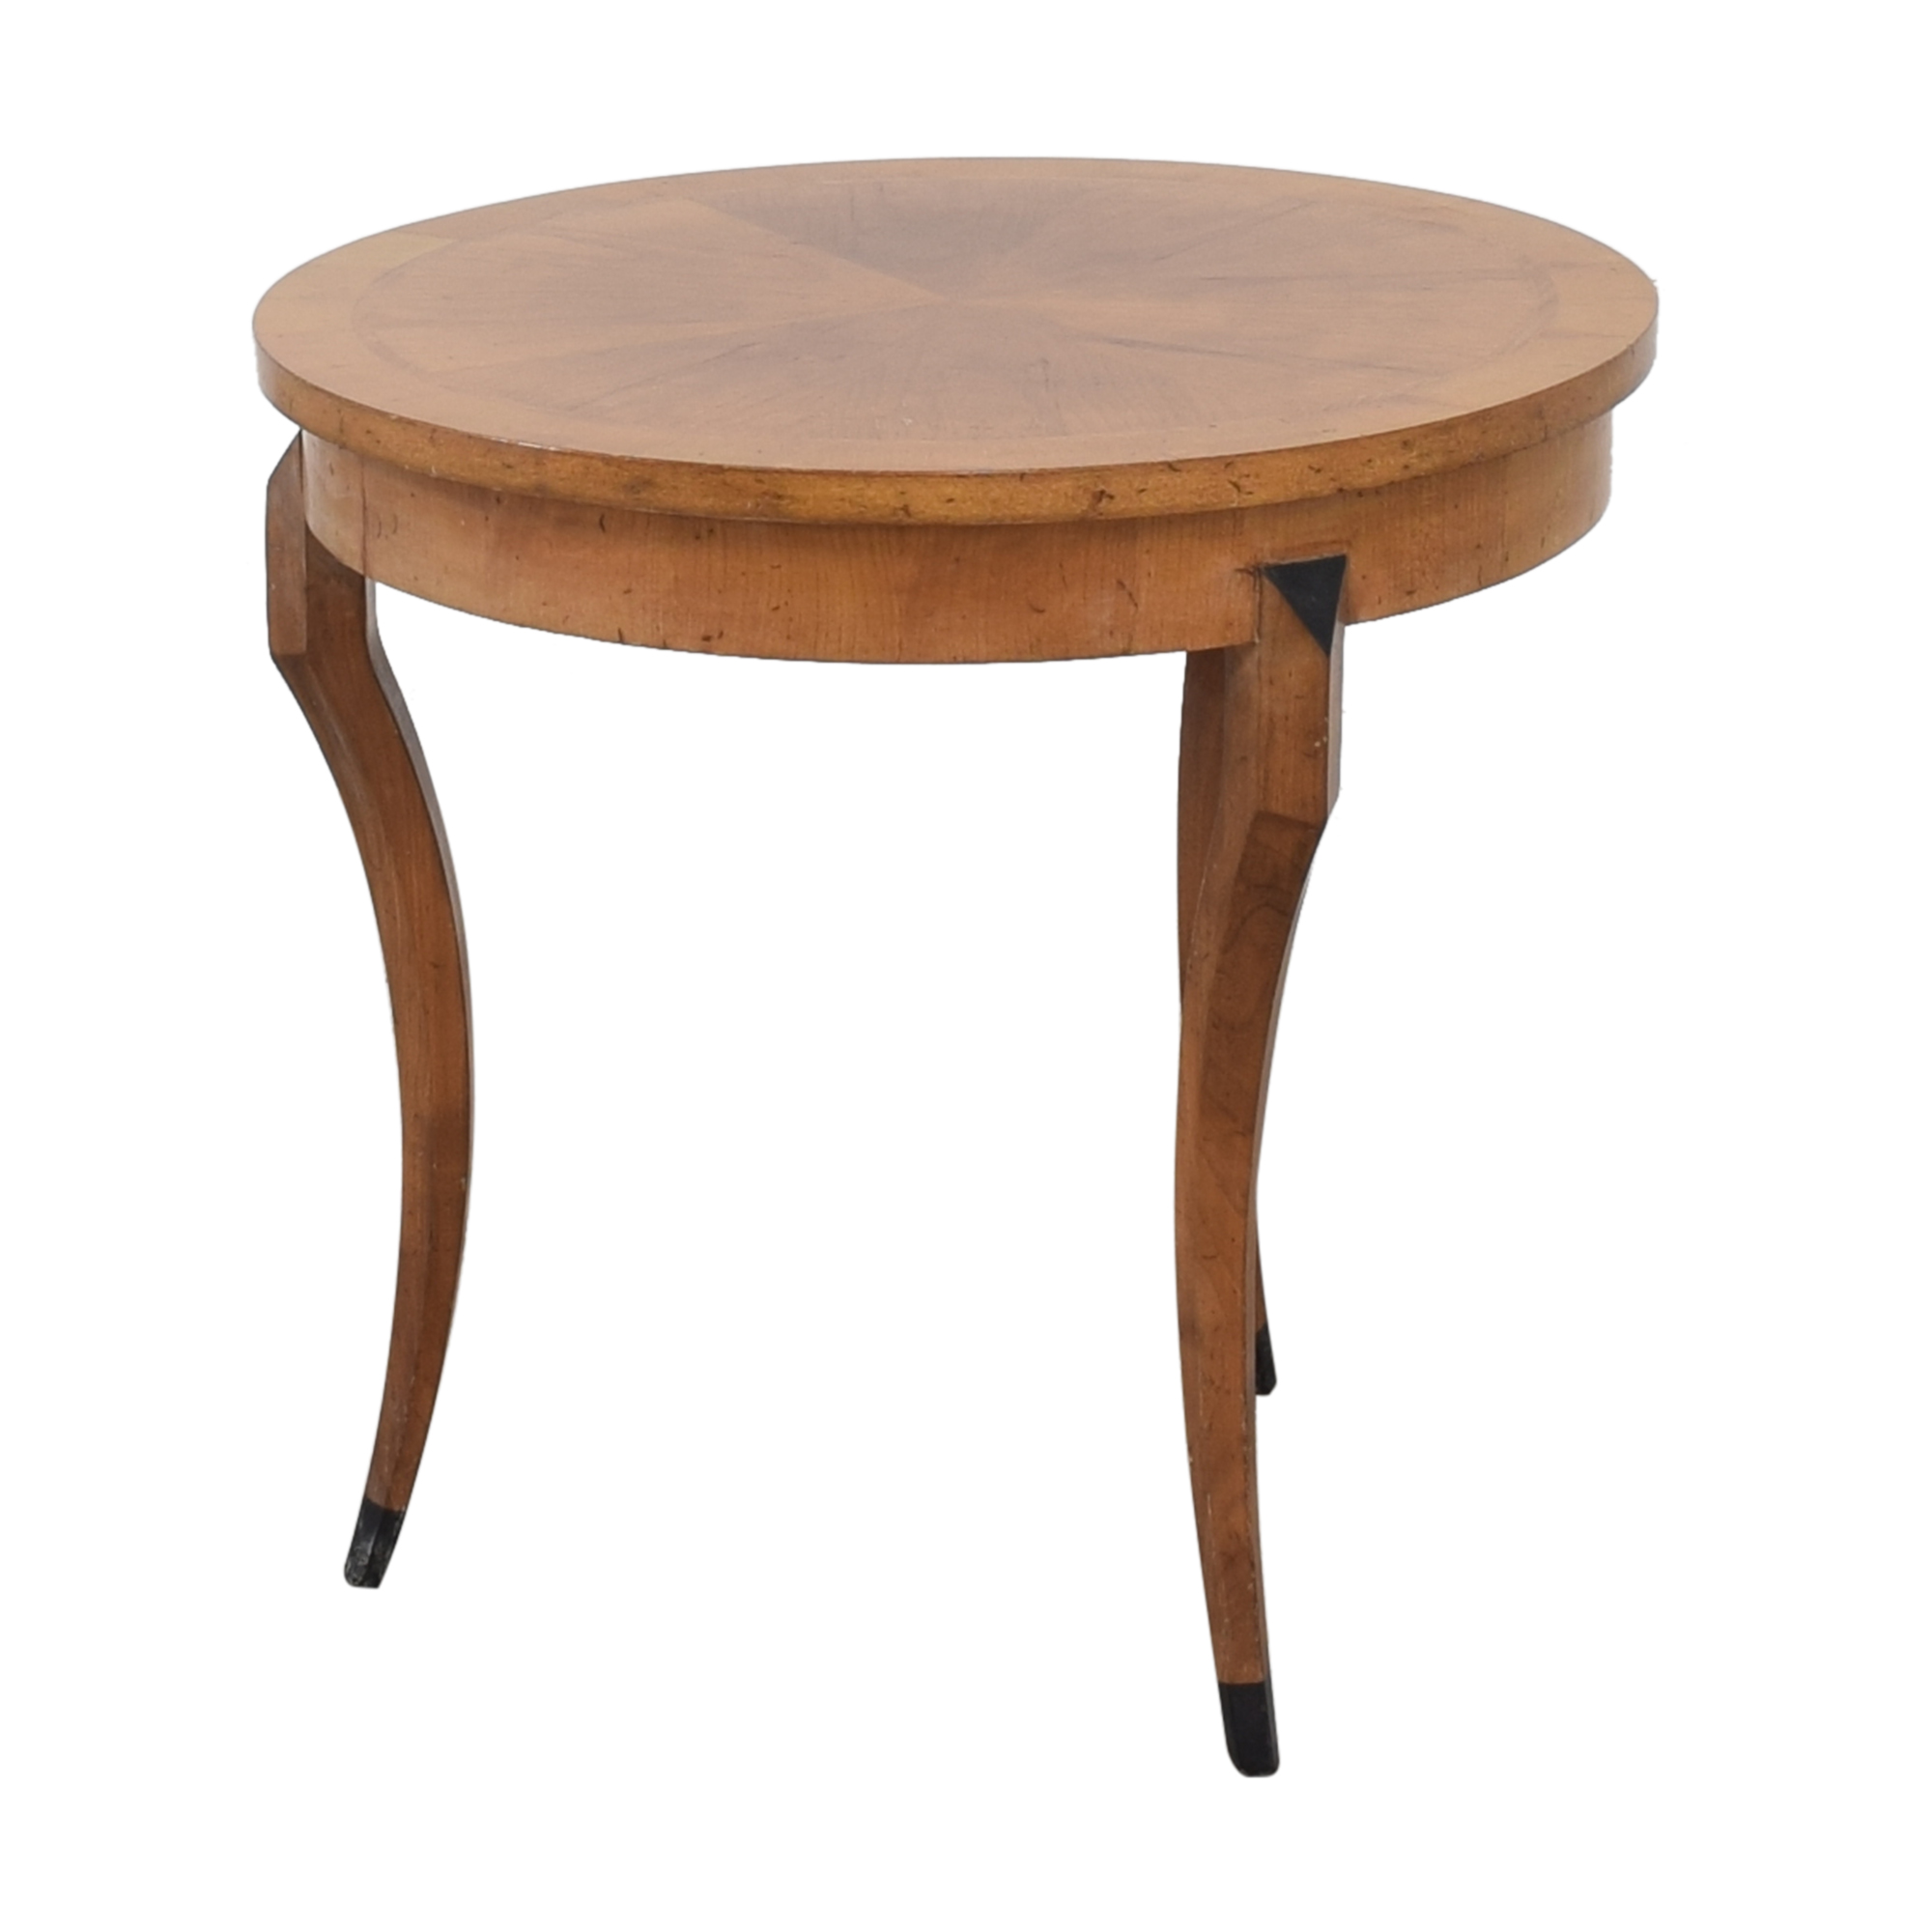 Bloomingdale's Bloomingdale's Round Accent Table coupon